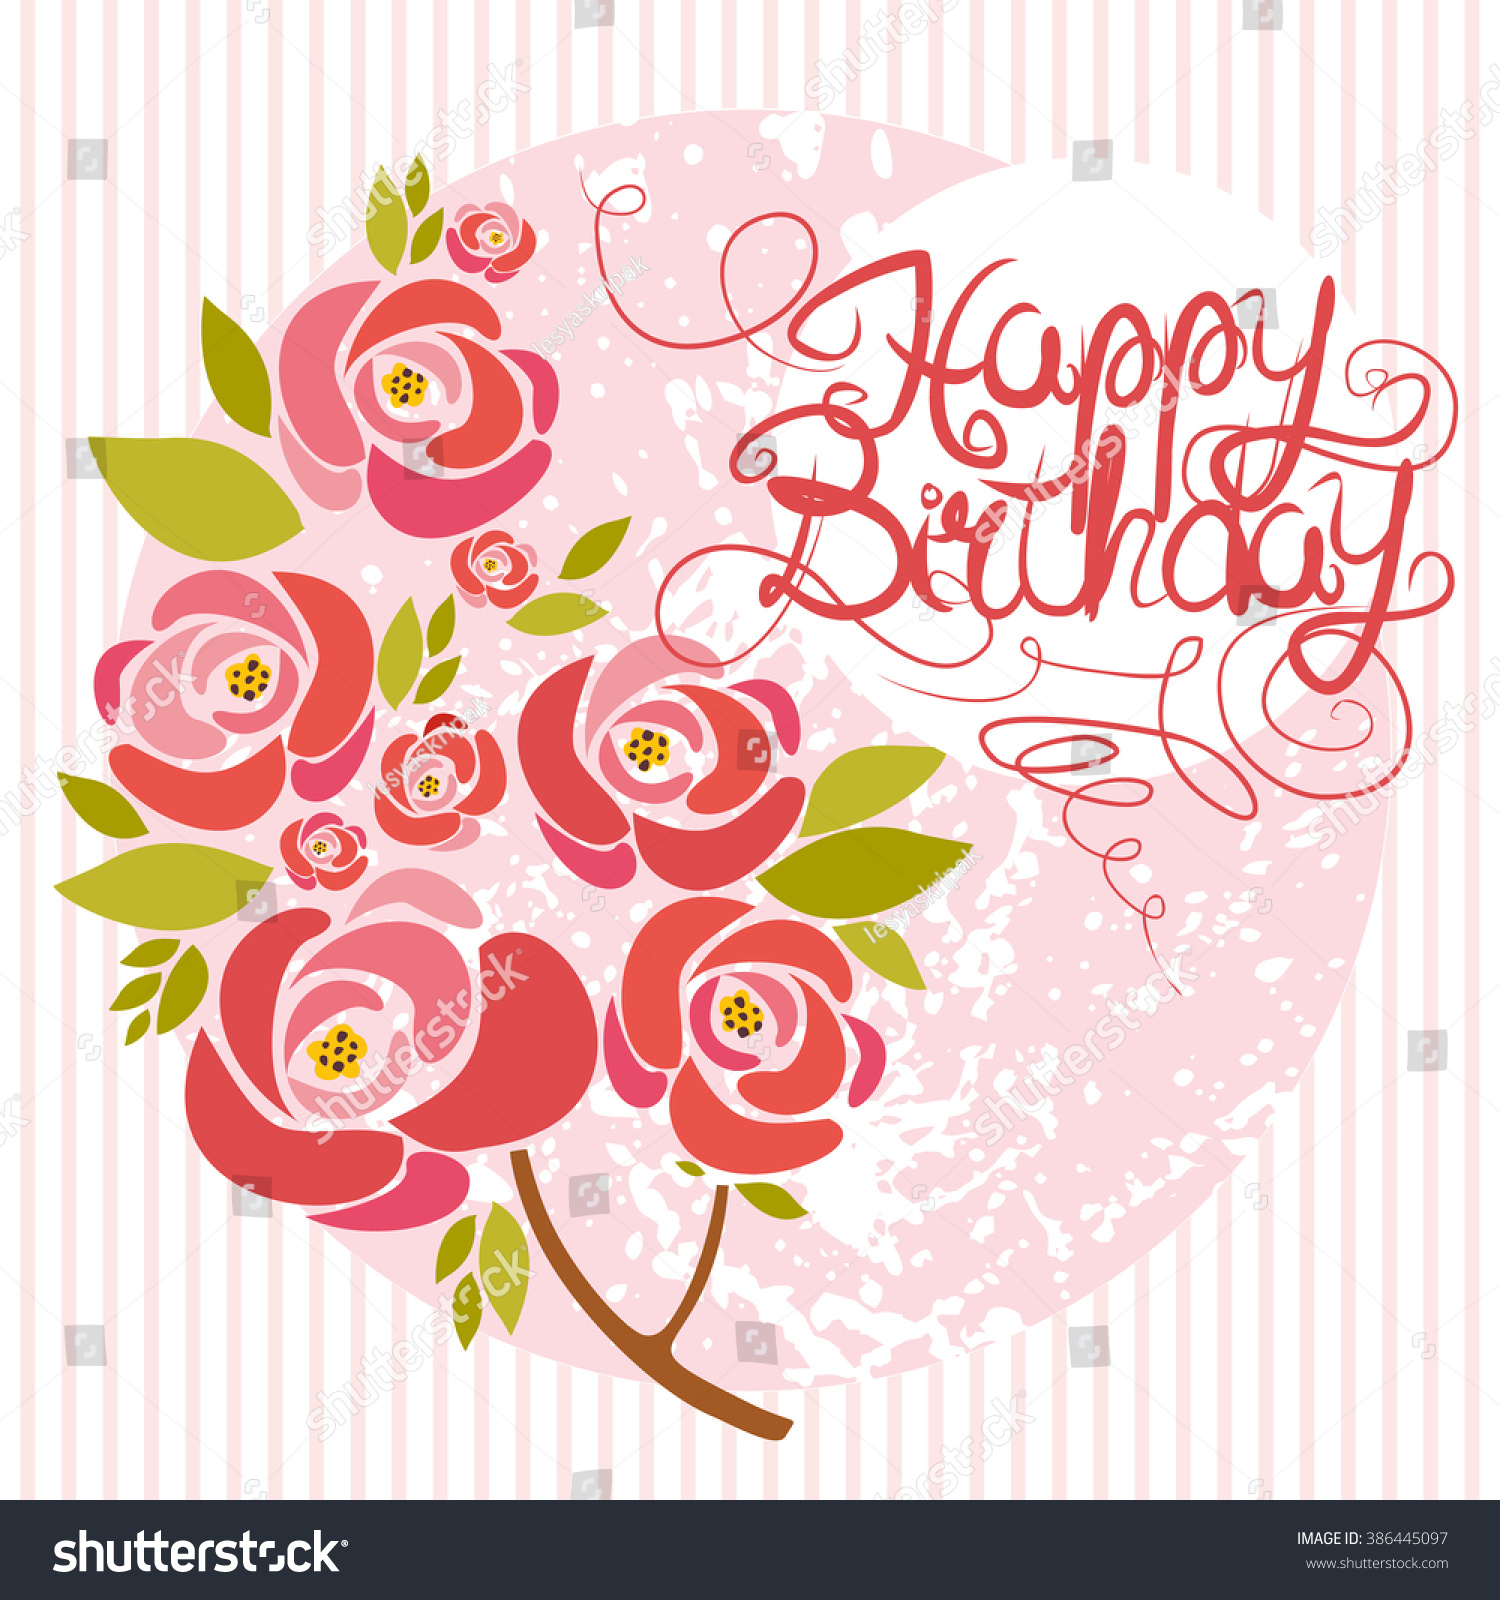 Vector card happy birthday bouquet roses stock vector royalty free vector card happy birthday bouquet of roses in pink izmirmasajfo